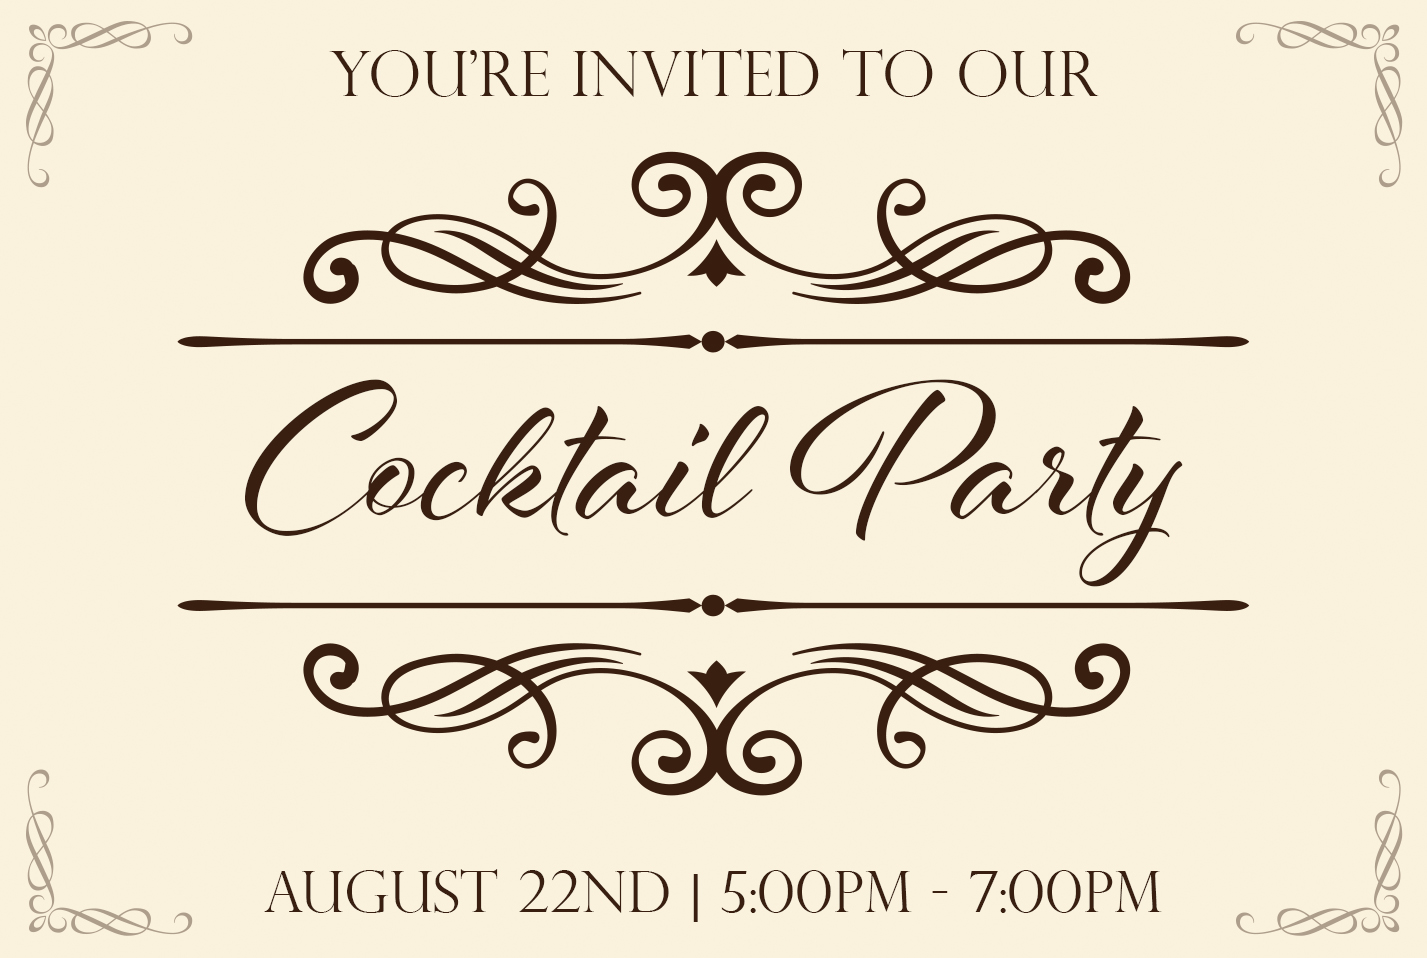 Cocktail Party Event page picture